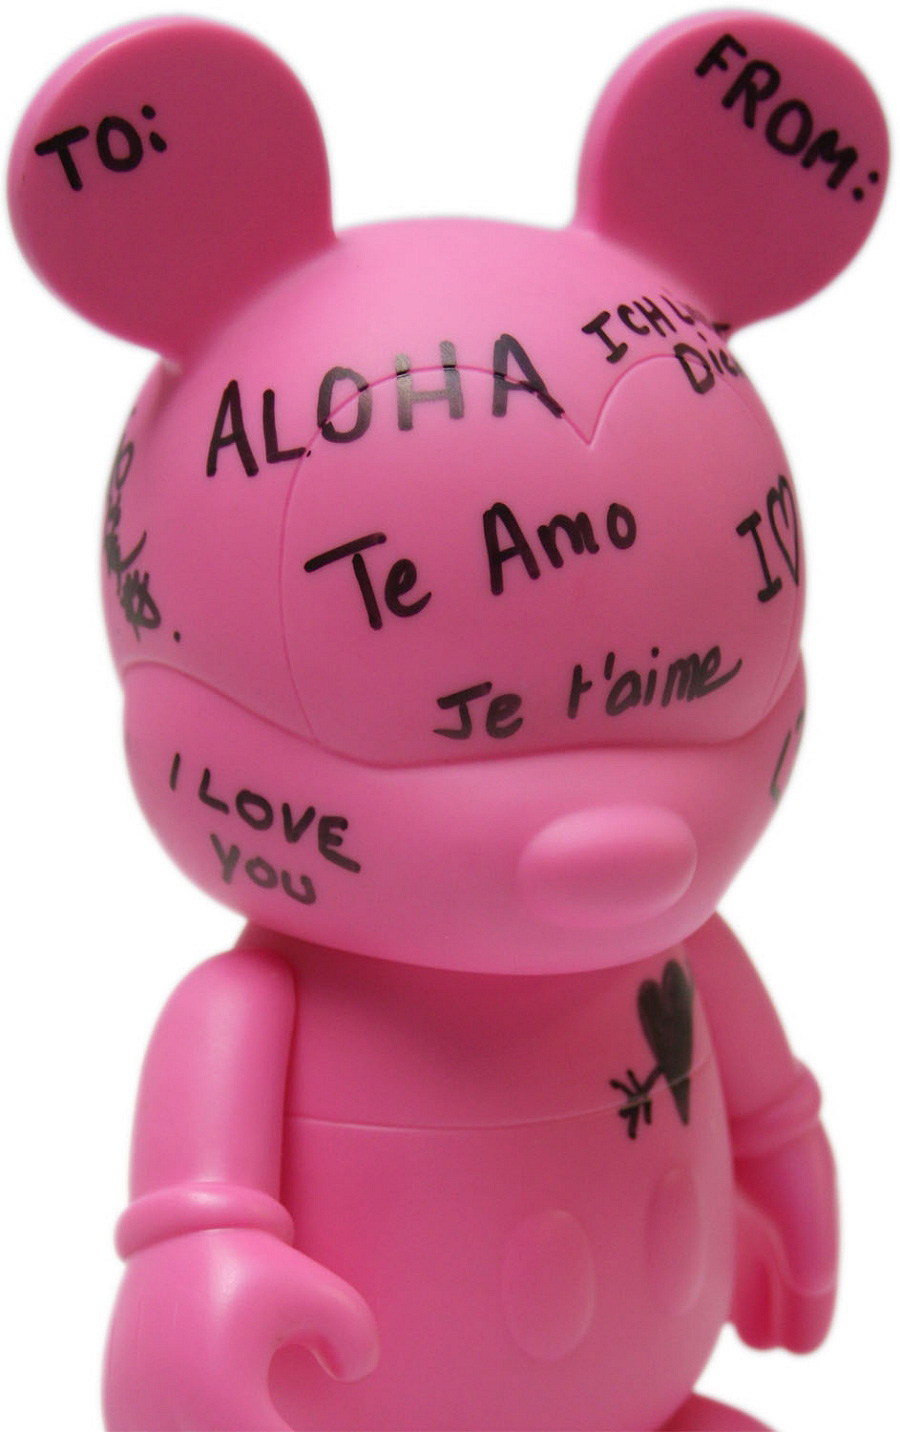 Personalized Valentine's Day Gifts at Disney Parks ...